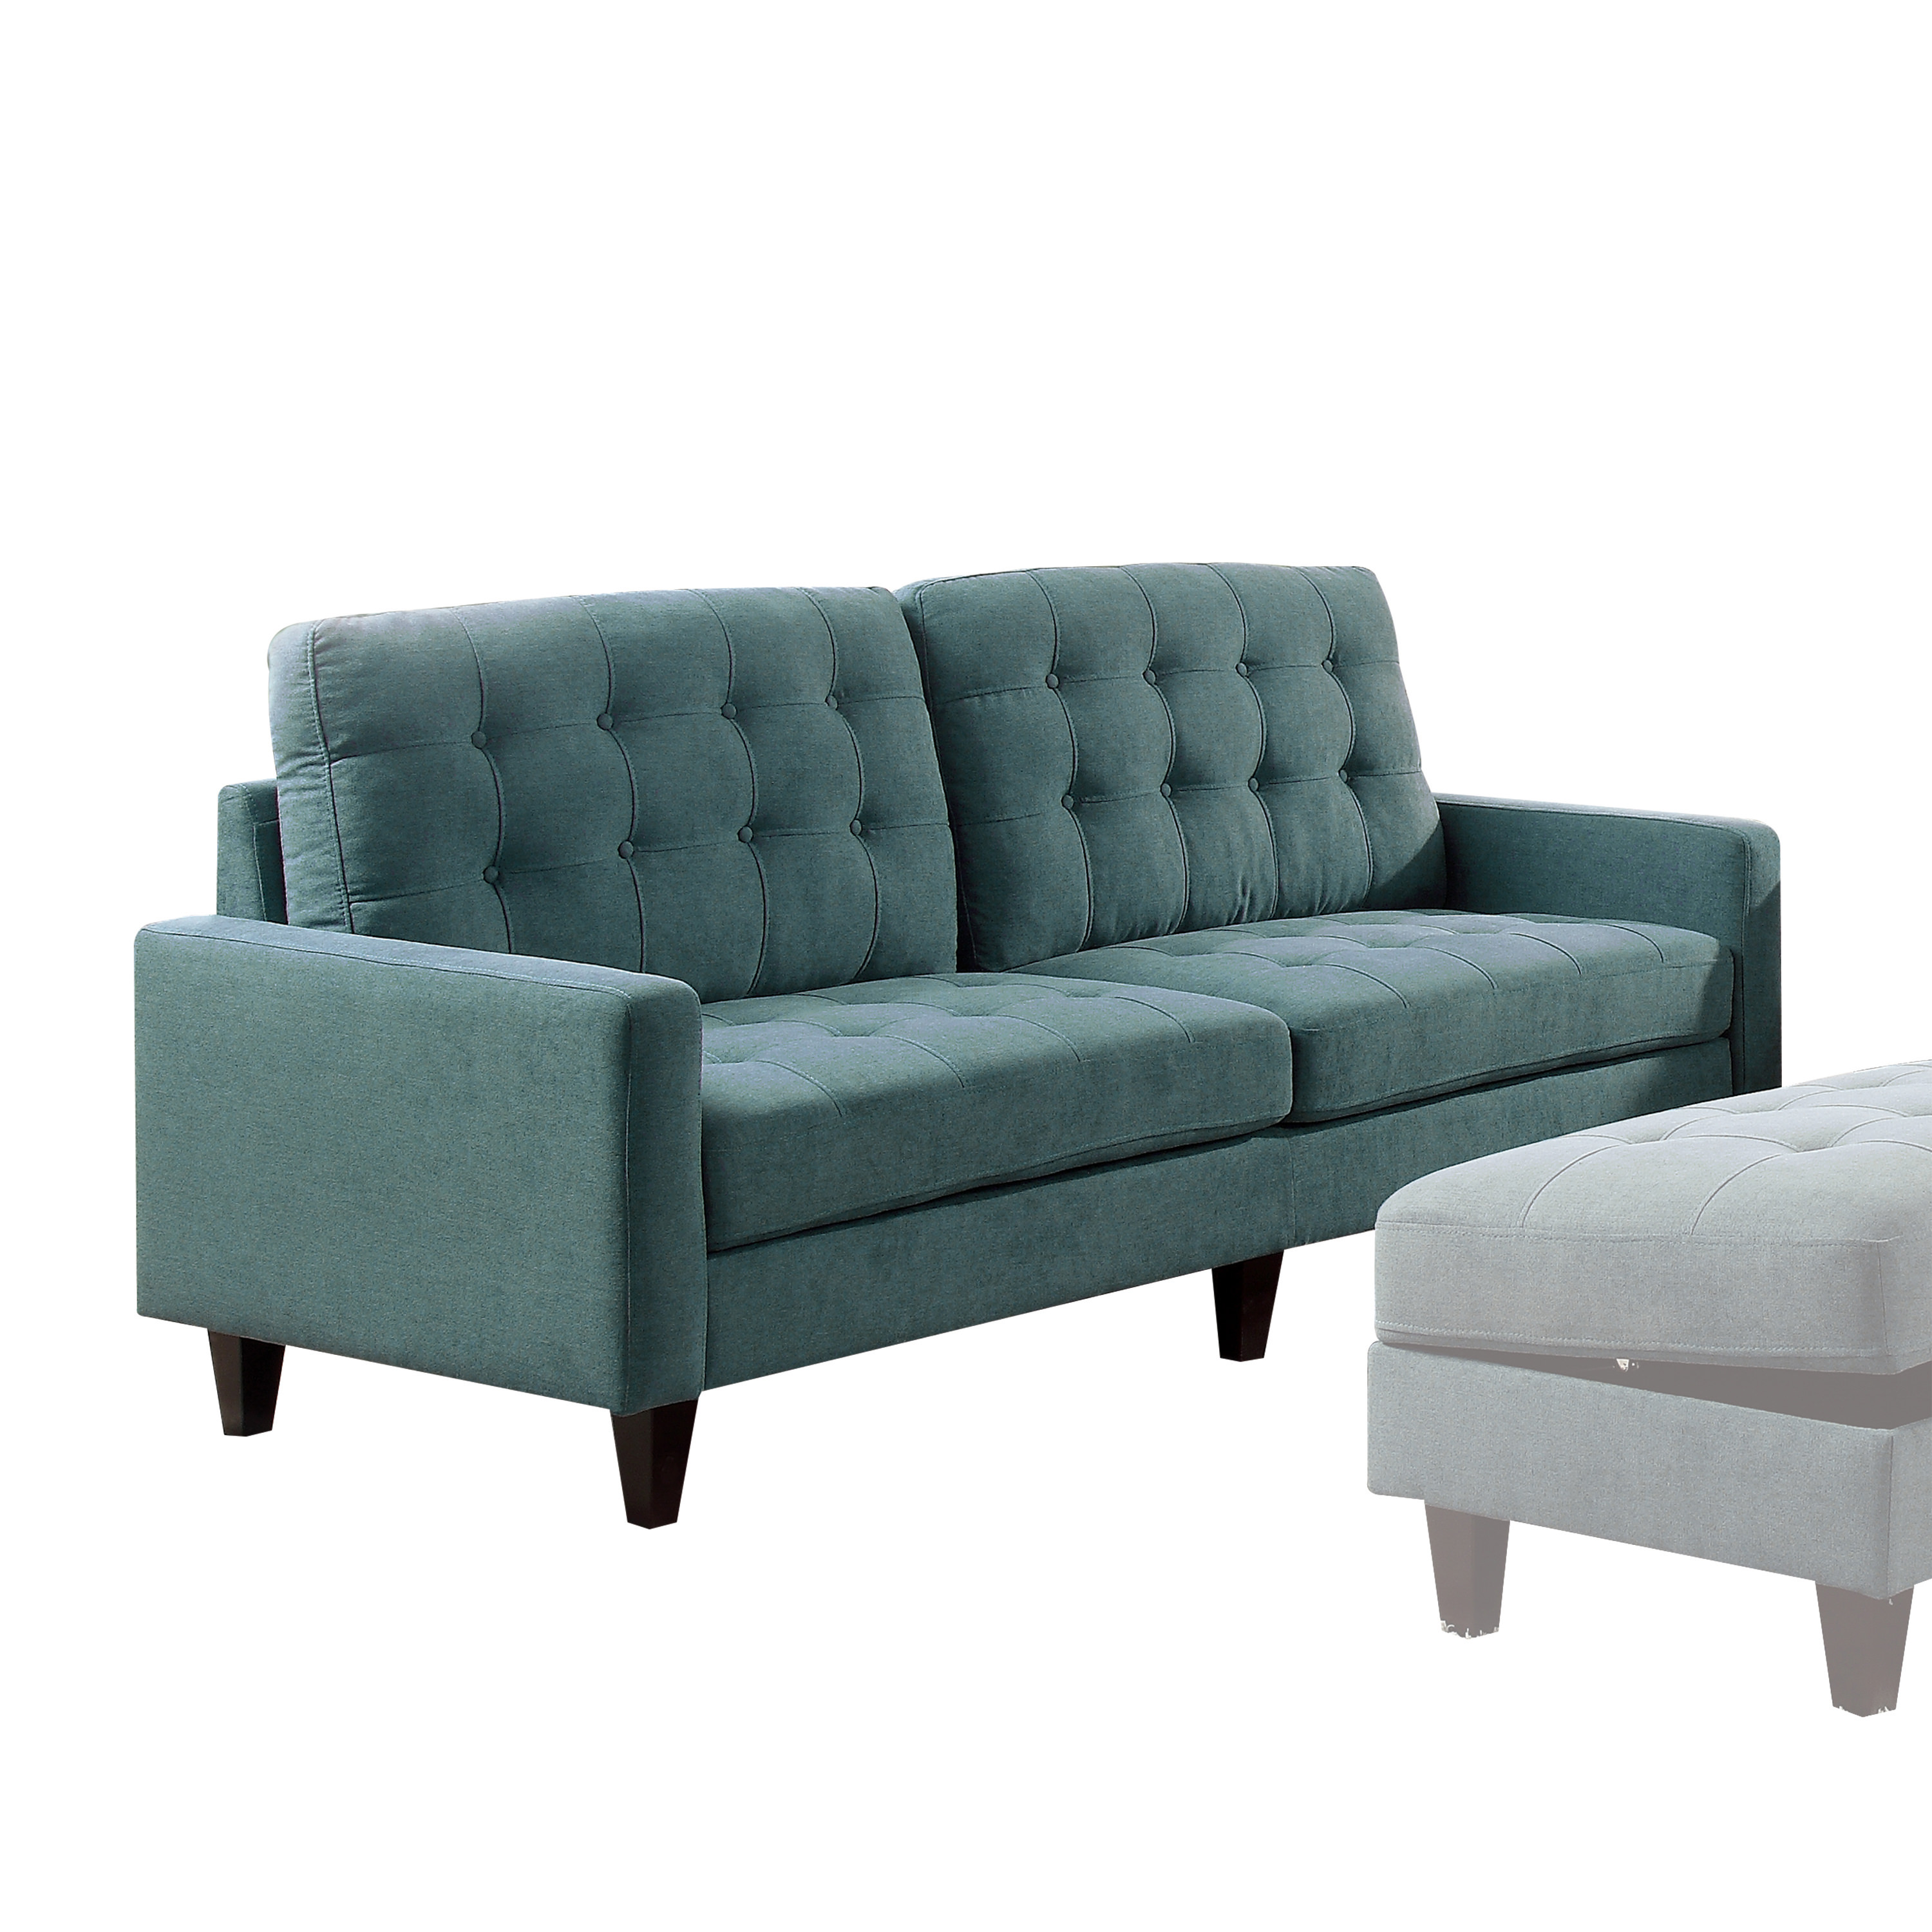 Acme Nate Memory Foam Sofa with Tufting in Teal Fabric